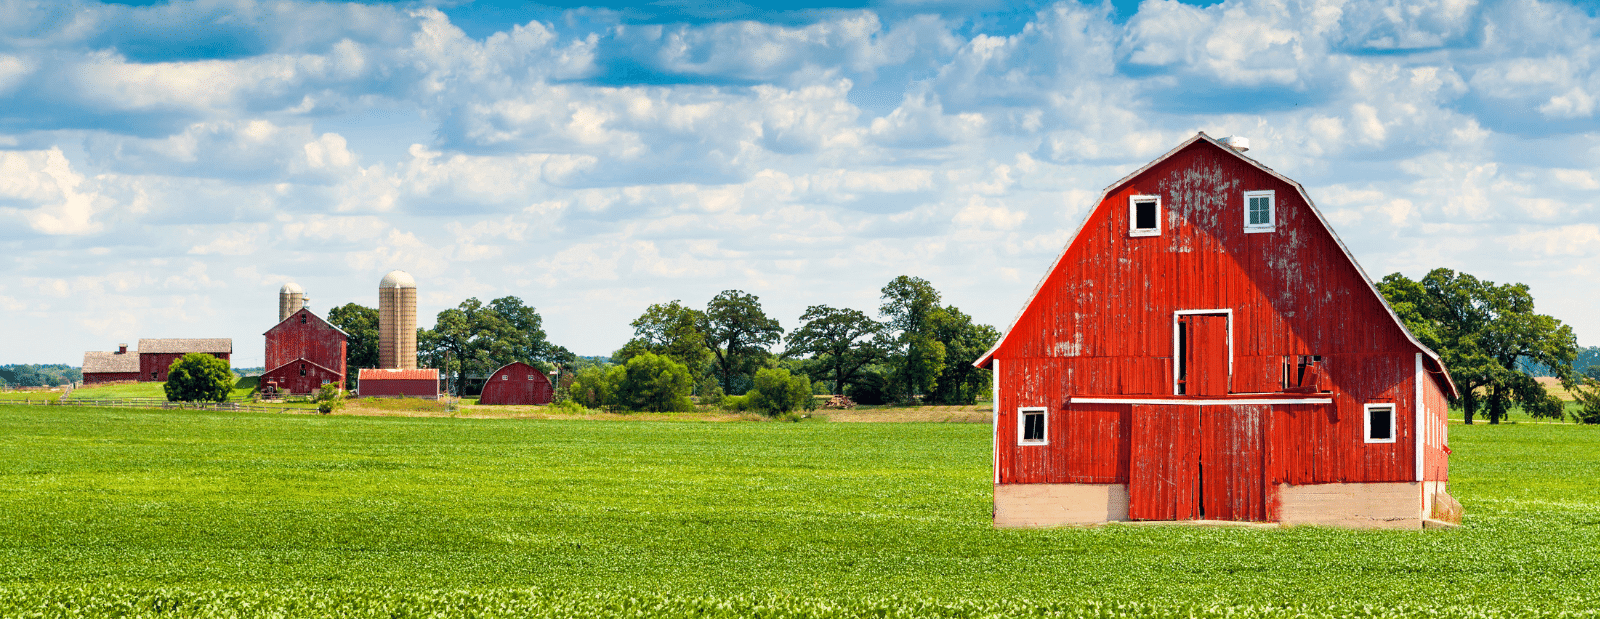 Rural Broadband Report - Image of a red barn in a field